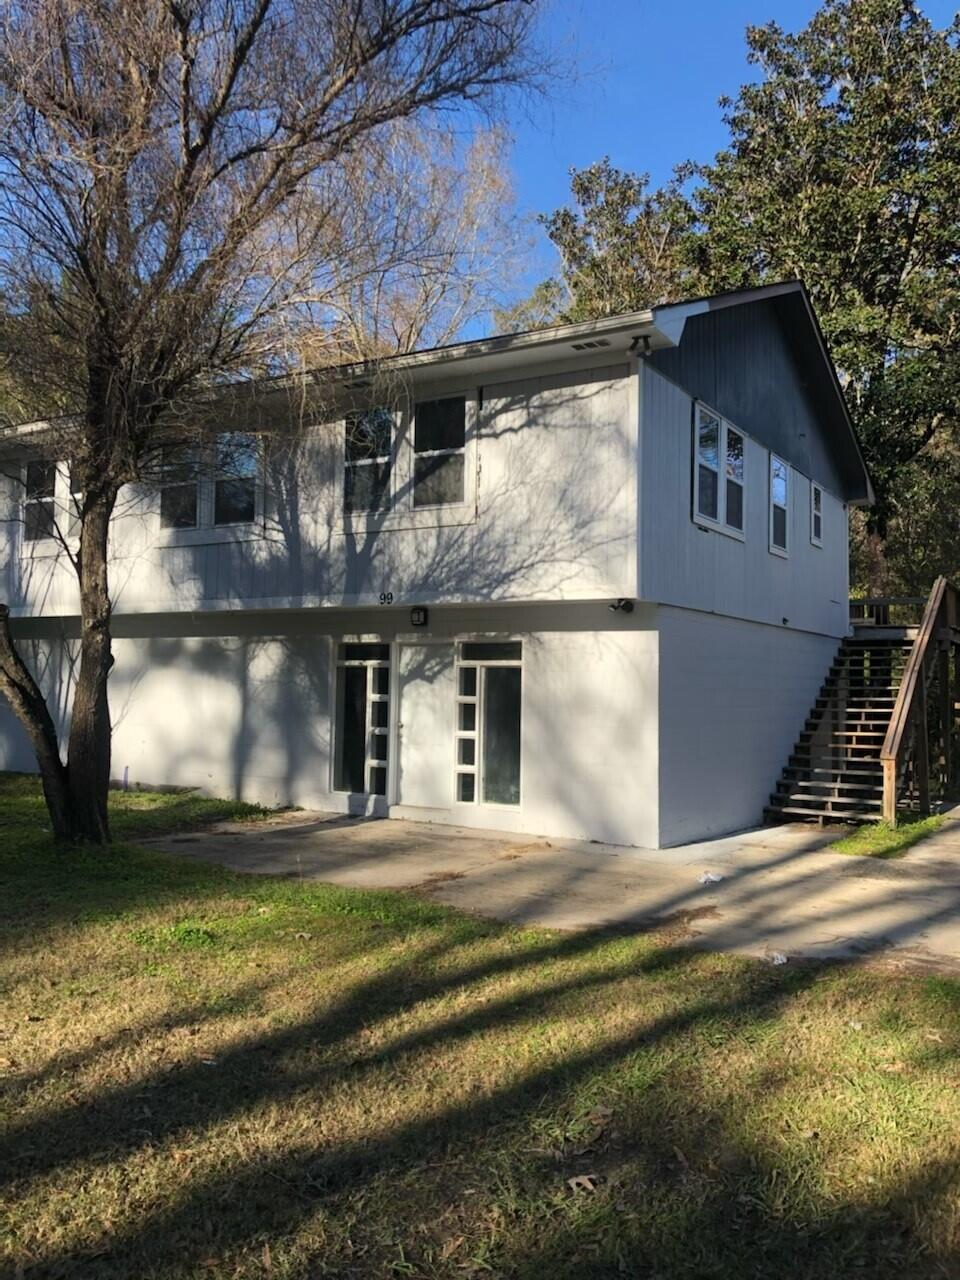 99 Swanson Drive, Summerville, 29483, ,MultiFamily,For Sale,Swanson,21011771